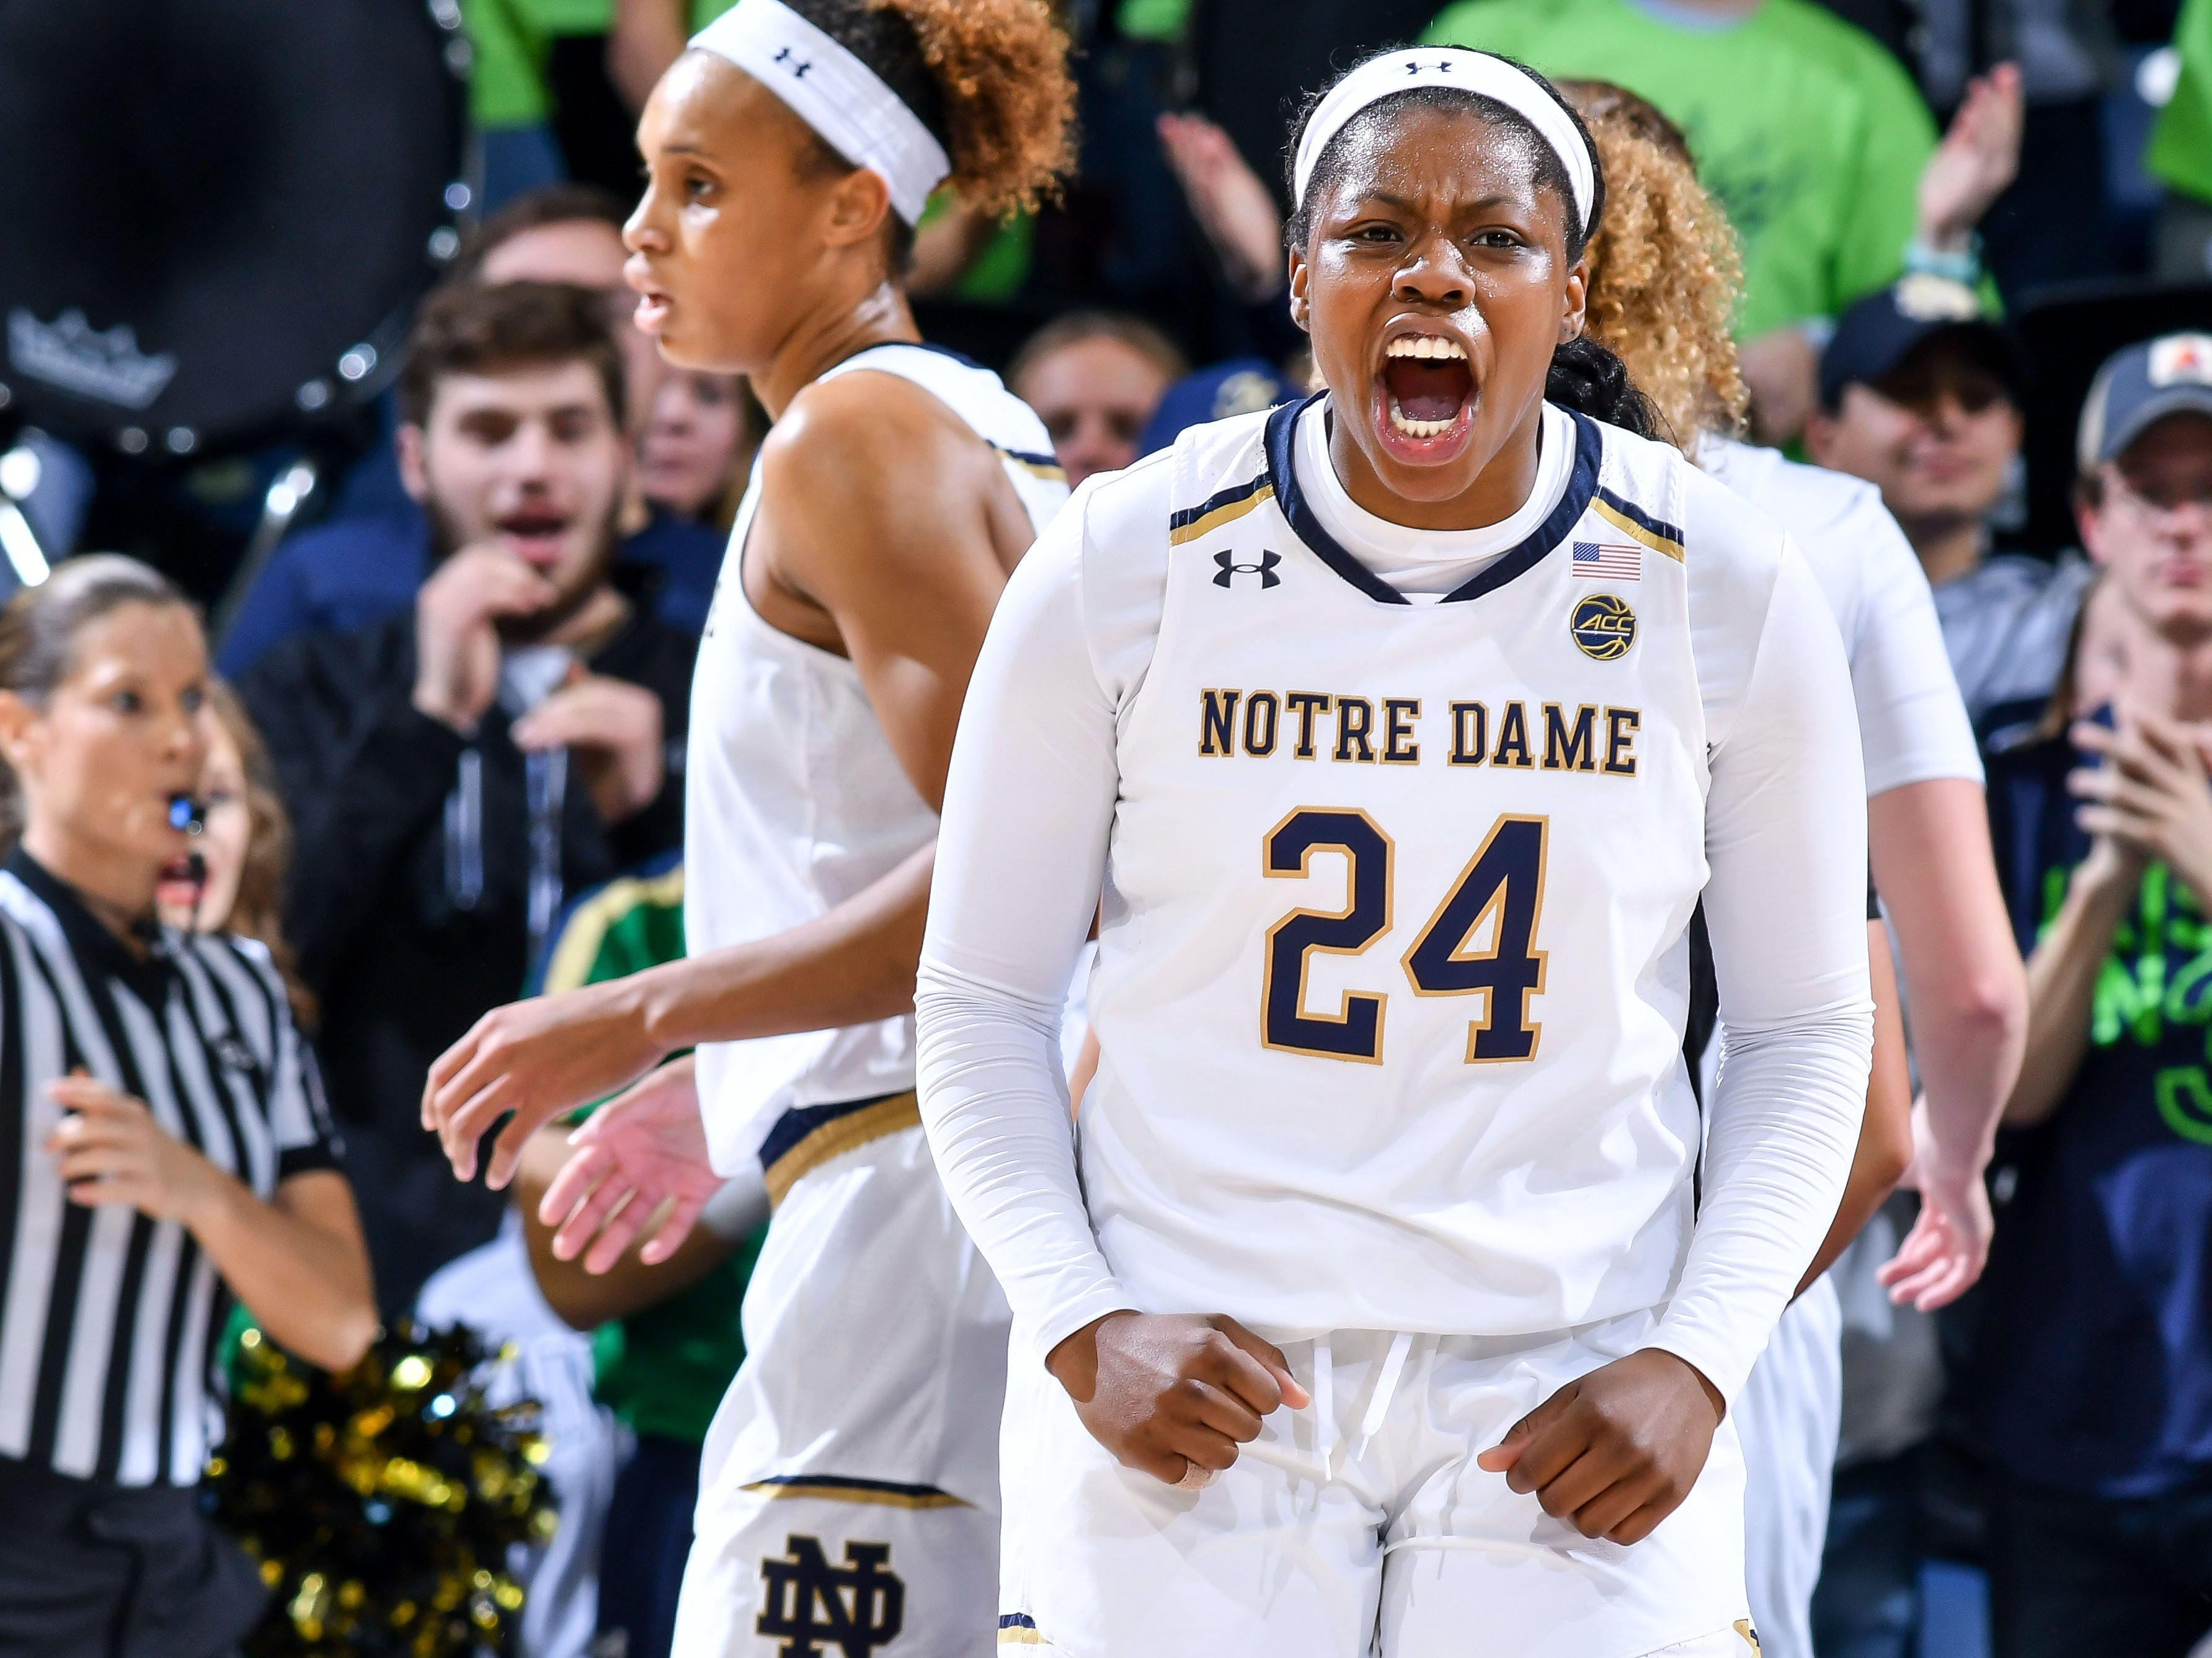 Jan 10, 2019; South Bend, IN, USA; Notre Dame Fighting Irish guard Arike Ogunbowale (24) reacts in the second half against the Louisville Cardinals at the Purcell Pavilion. Mandatory Credit: Matt Cashore-USA TODAY Sports